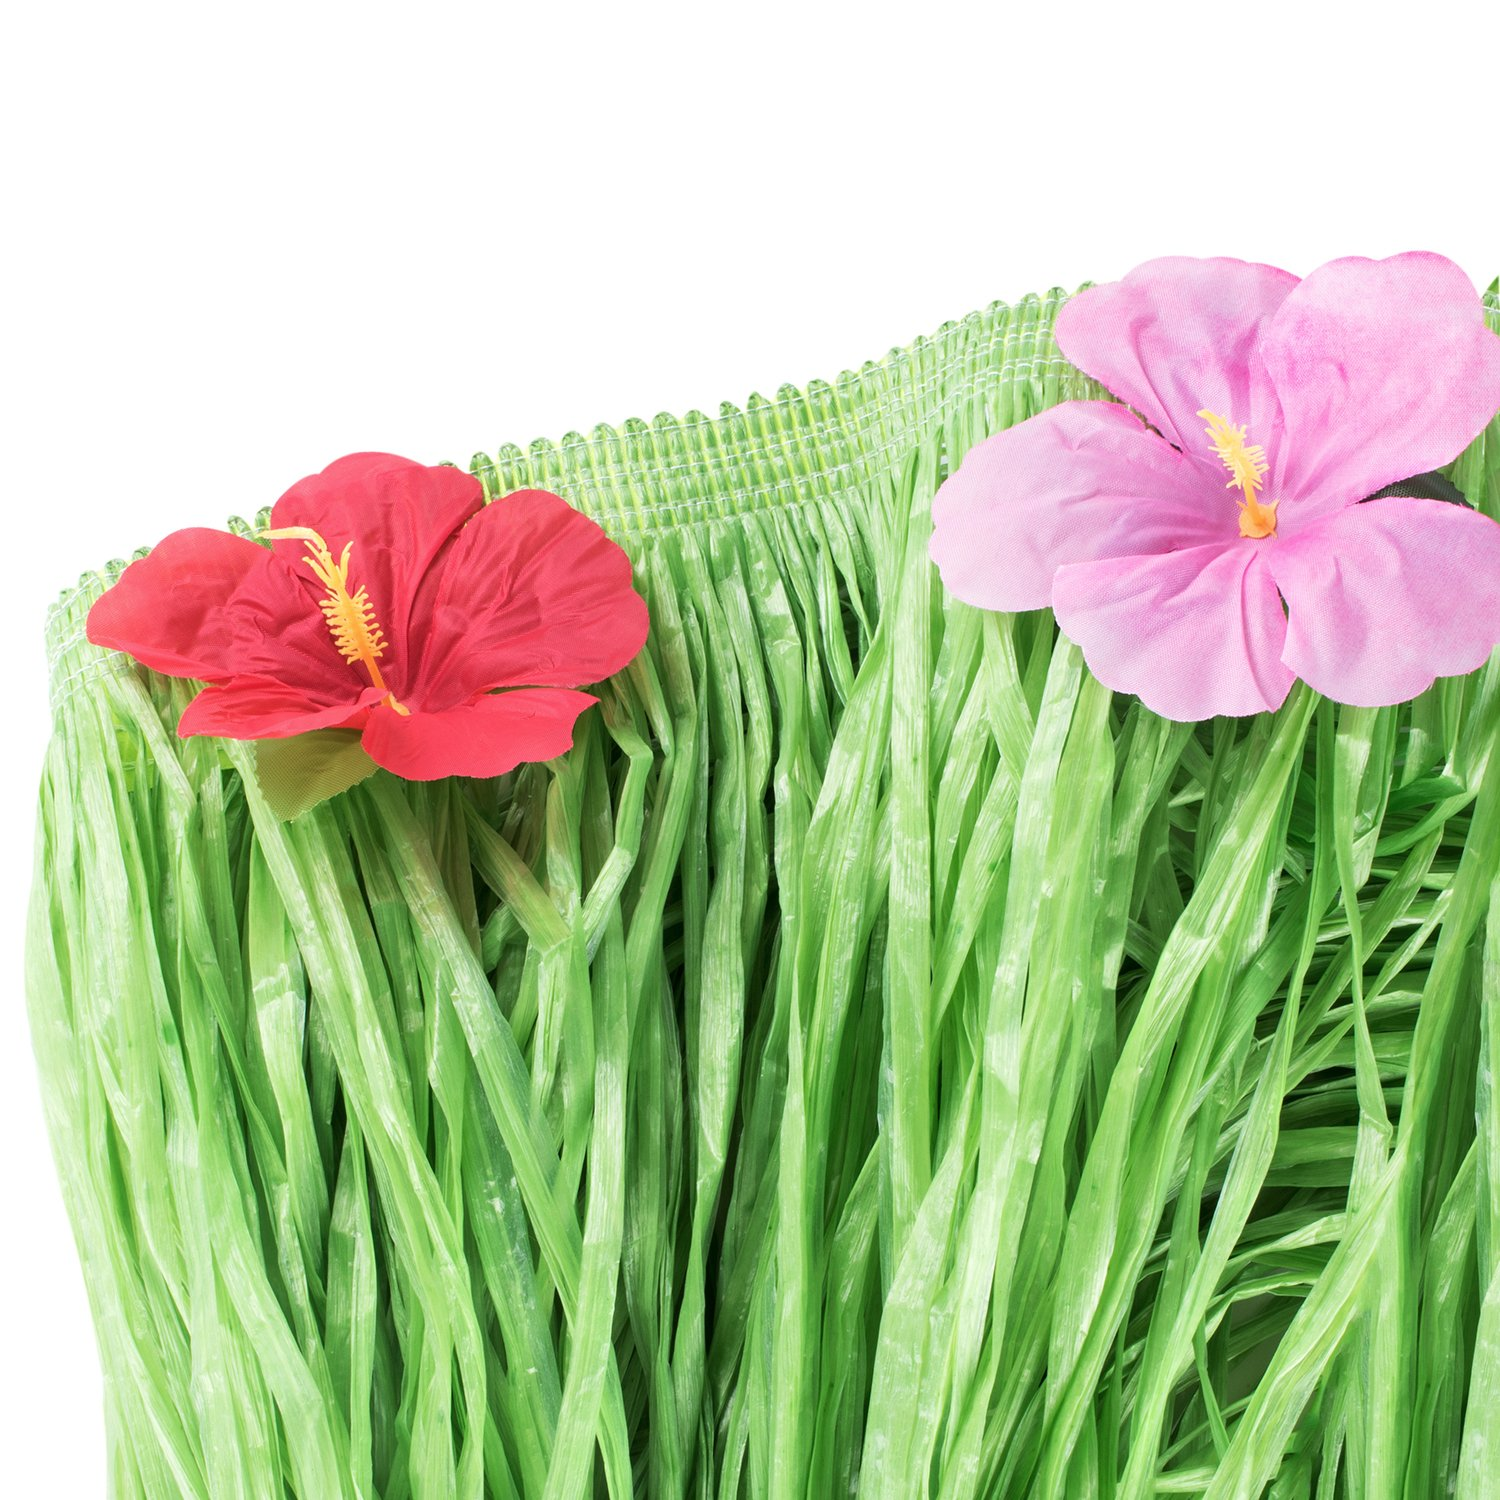 Hawaiian Table Skirt Luau Green String Hibiscus Leis Silk Flower Party Decoration (9ft Long) by Super Z Outlet by Super Z Outlet (Image #3)